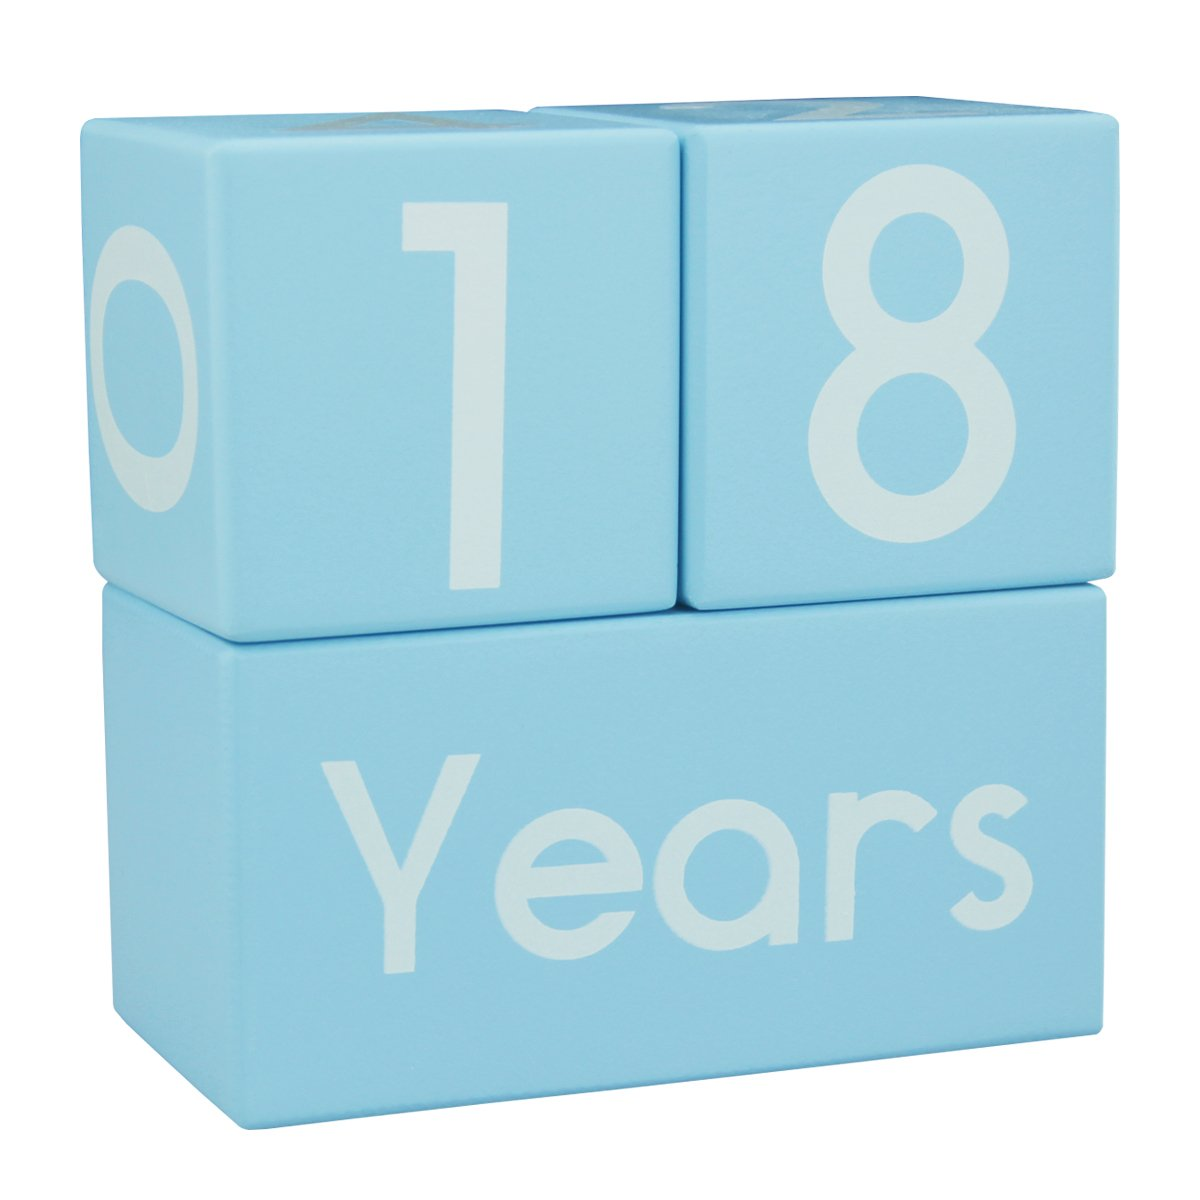 CICINY Age Blocks for Baby Pictures Wood Newborn Photography Props and Milestone Keepsake Gifts to Boy Girl Baby Or Pets (Blue)